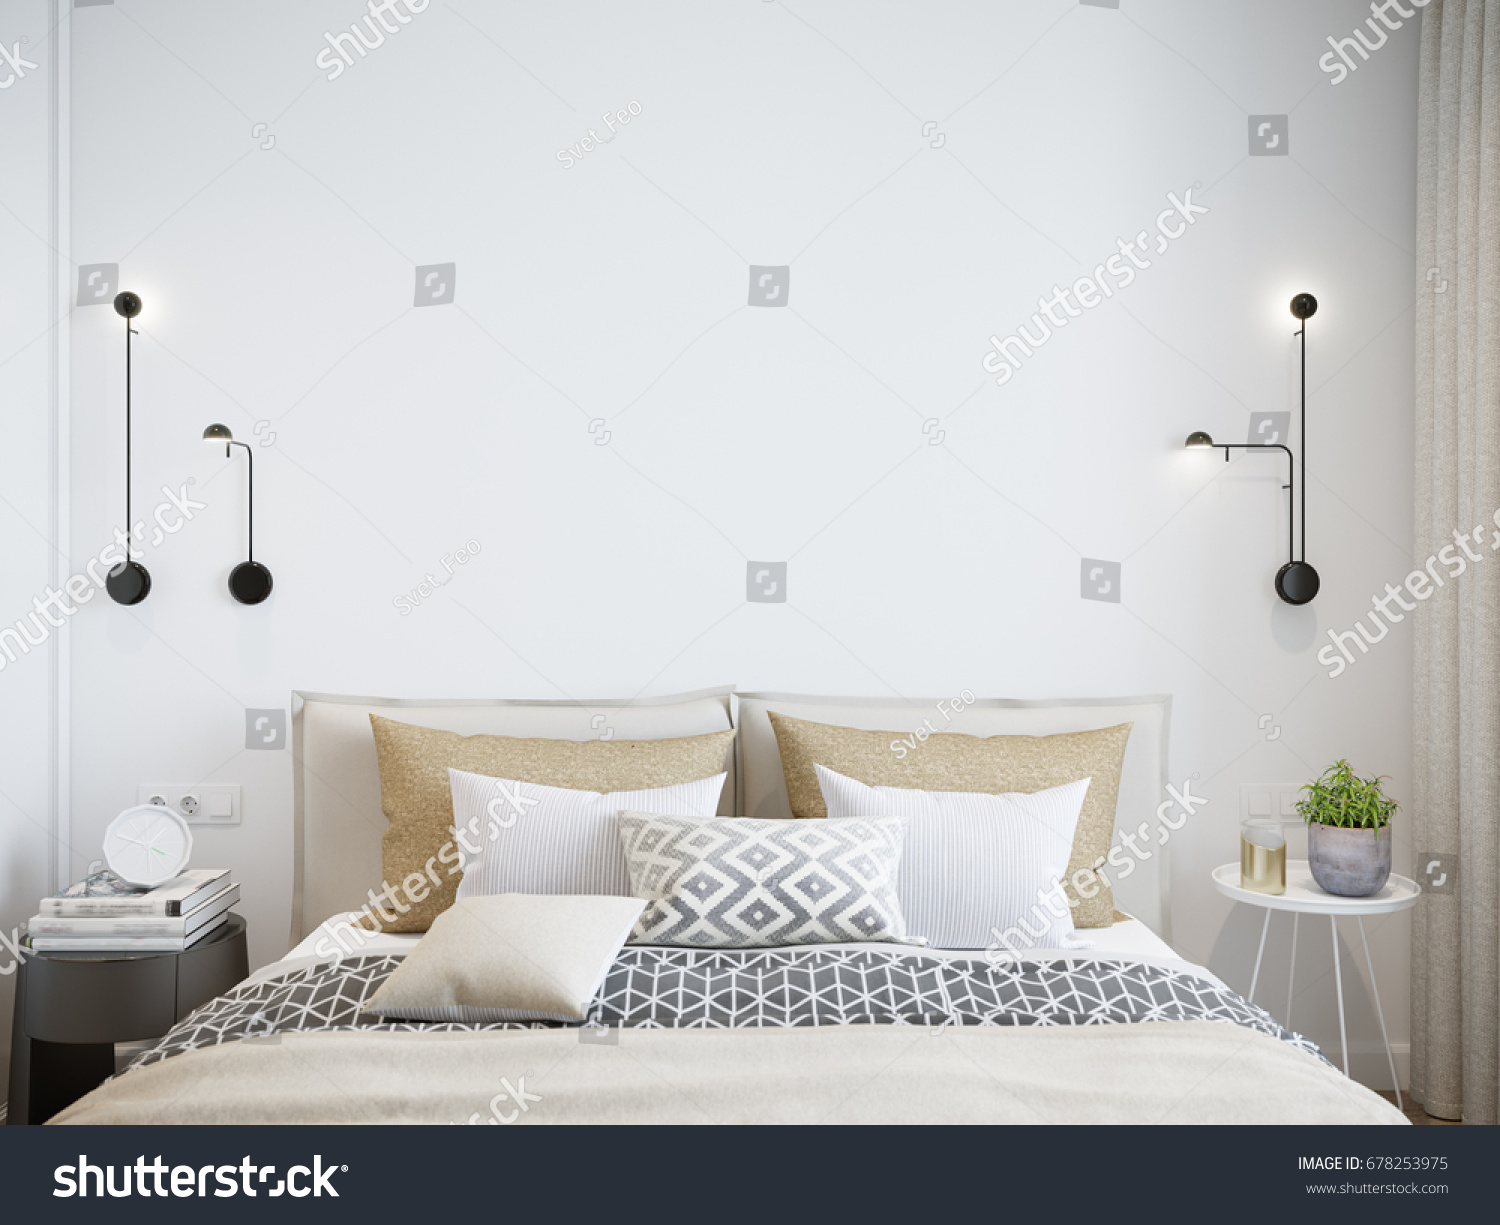 wall for makeover bedroom pictures art beautiful photos lifestyle ideas designs